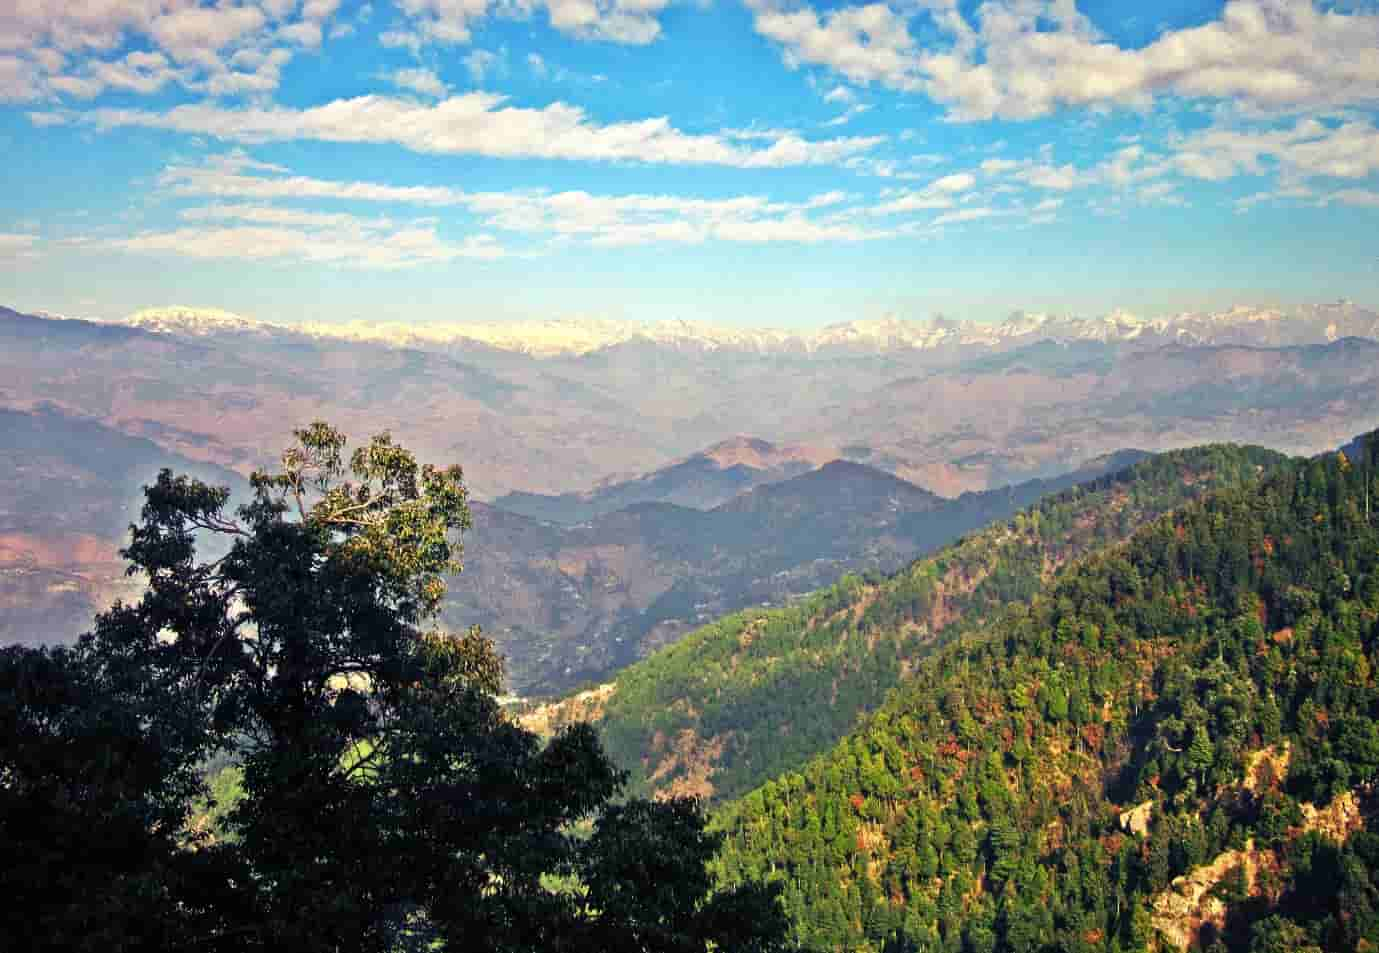 Dalhousie-is-Another-beautiful-hill-station-tucked-away-in-the-Himalayas-of-Himachal-Pradesh